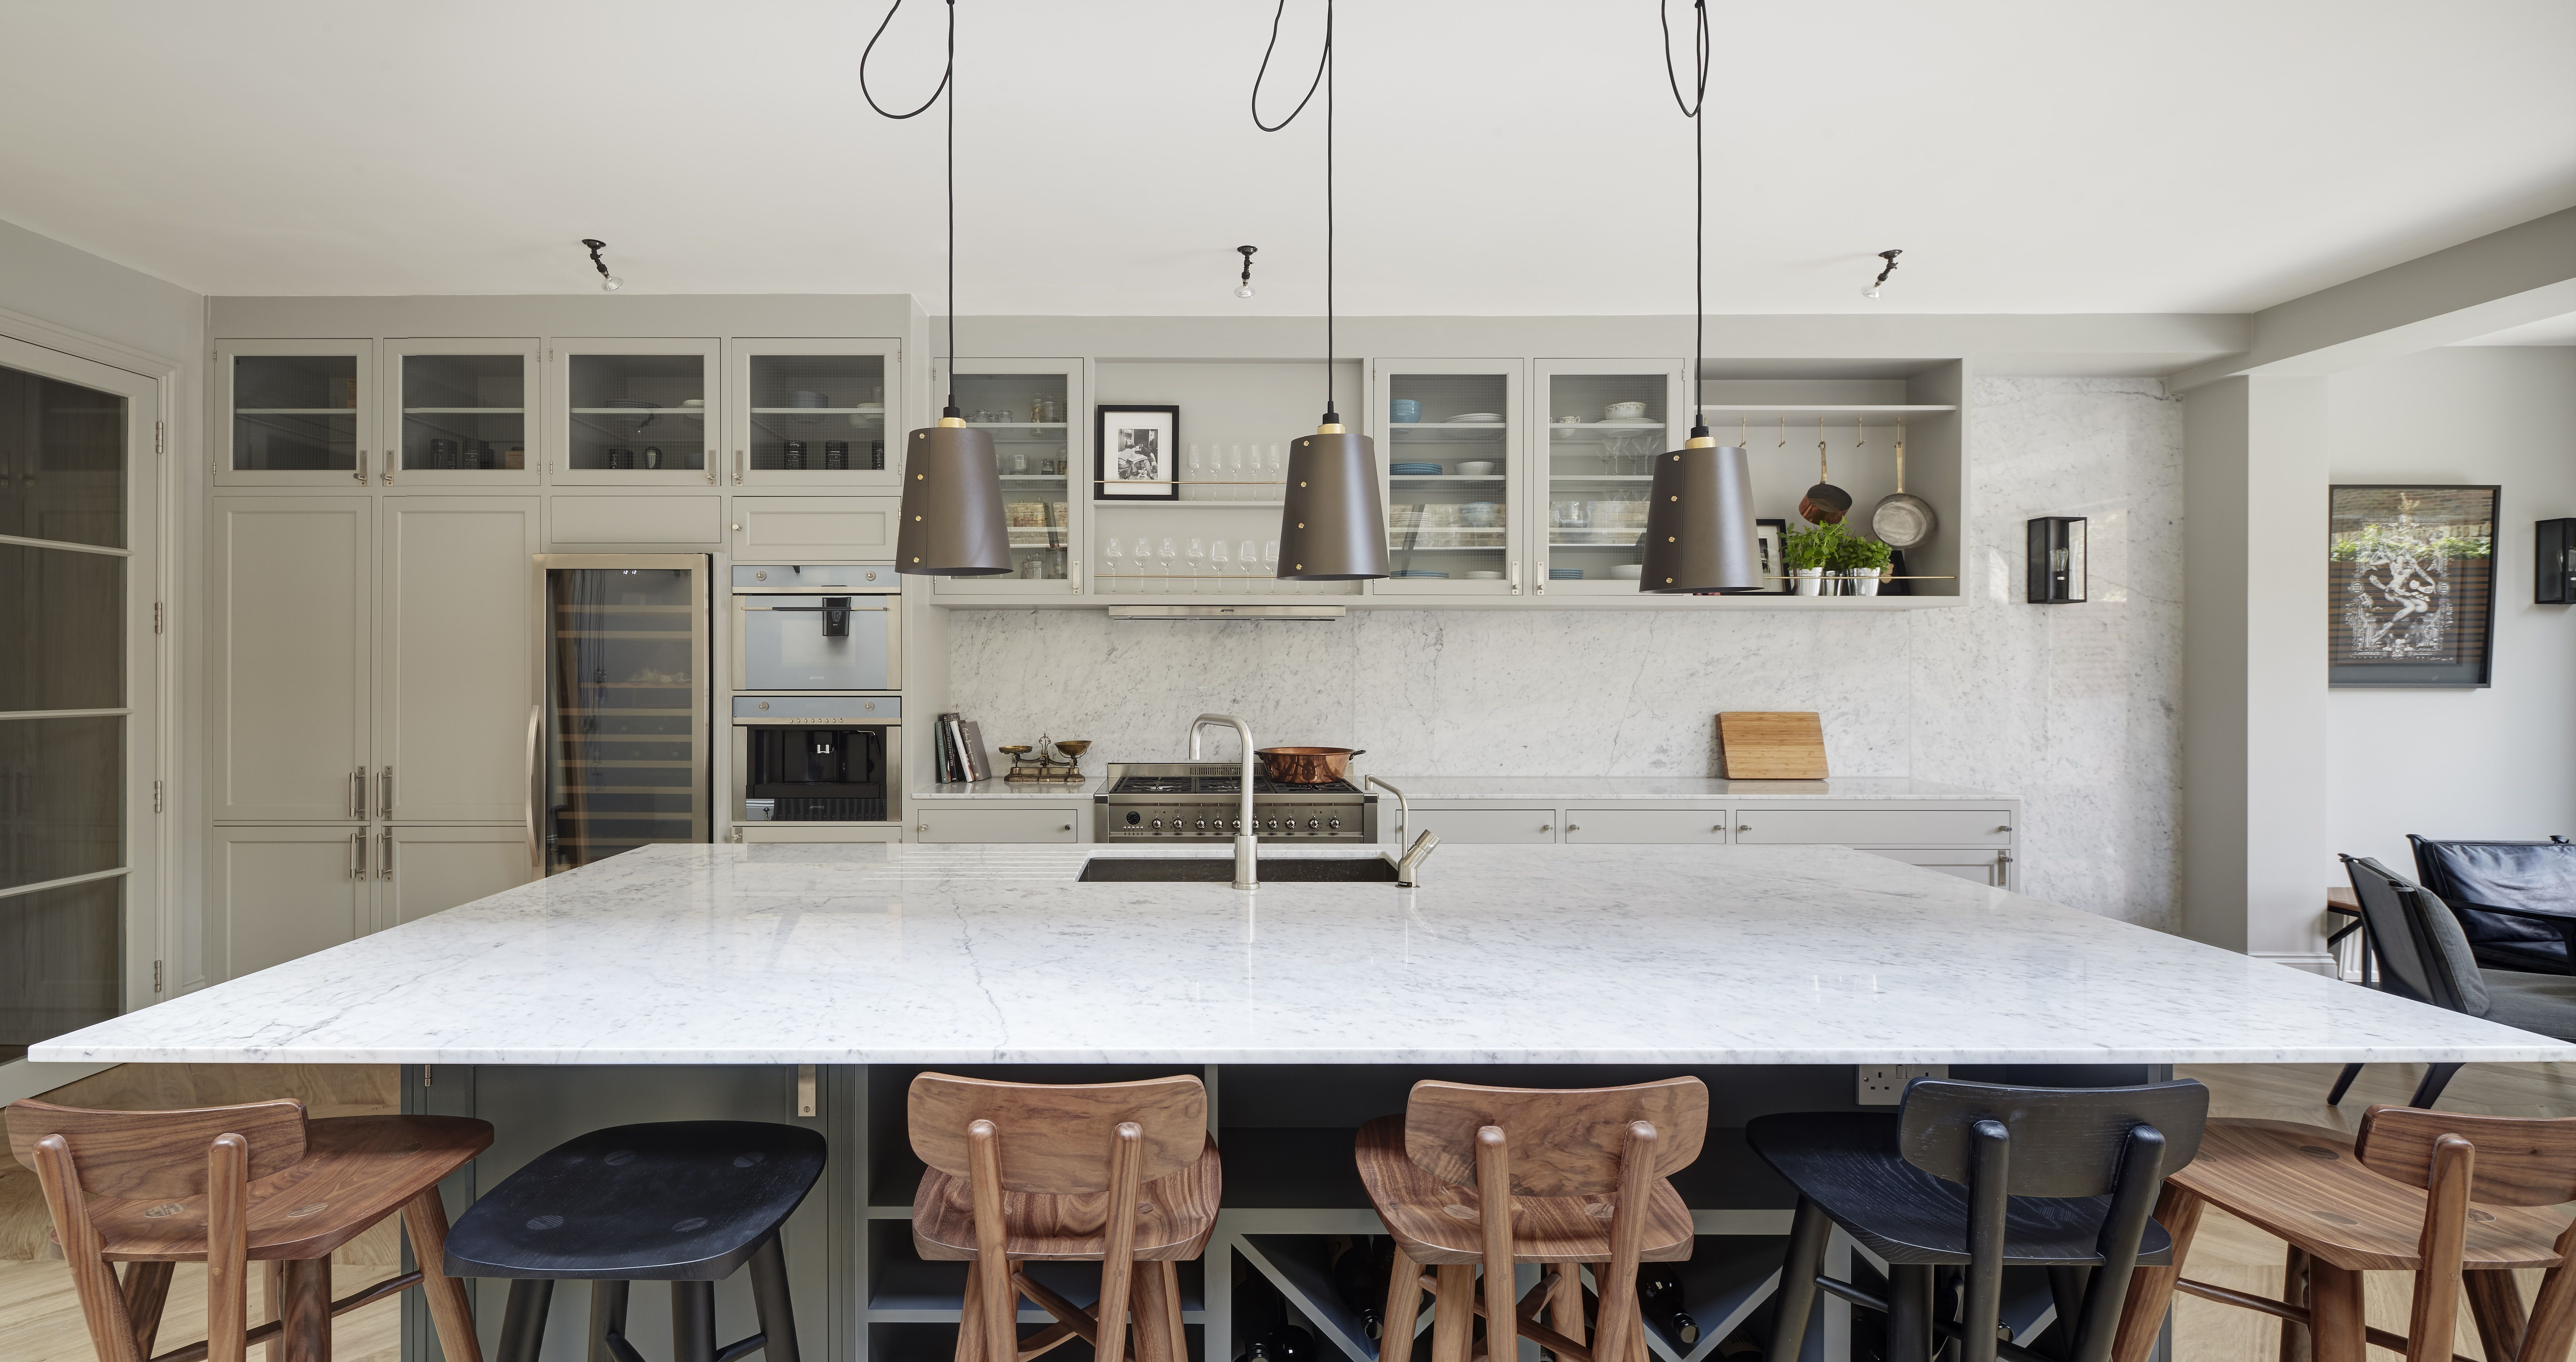 Renovating kitchens can be overwhelming but weu0027ve